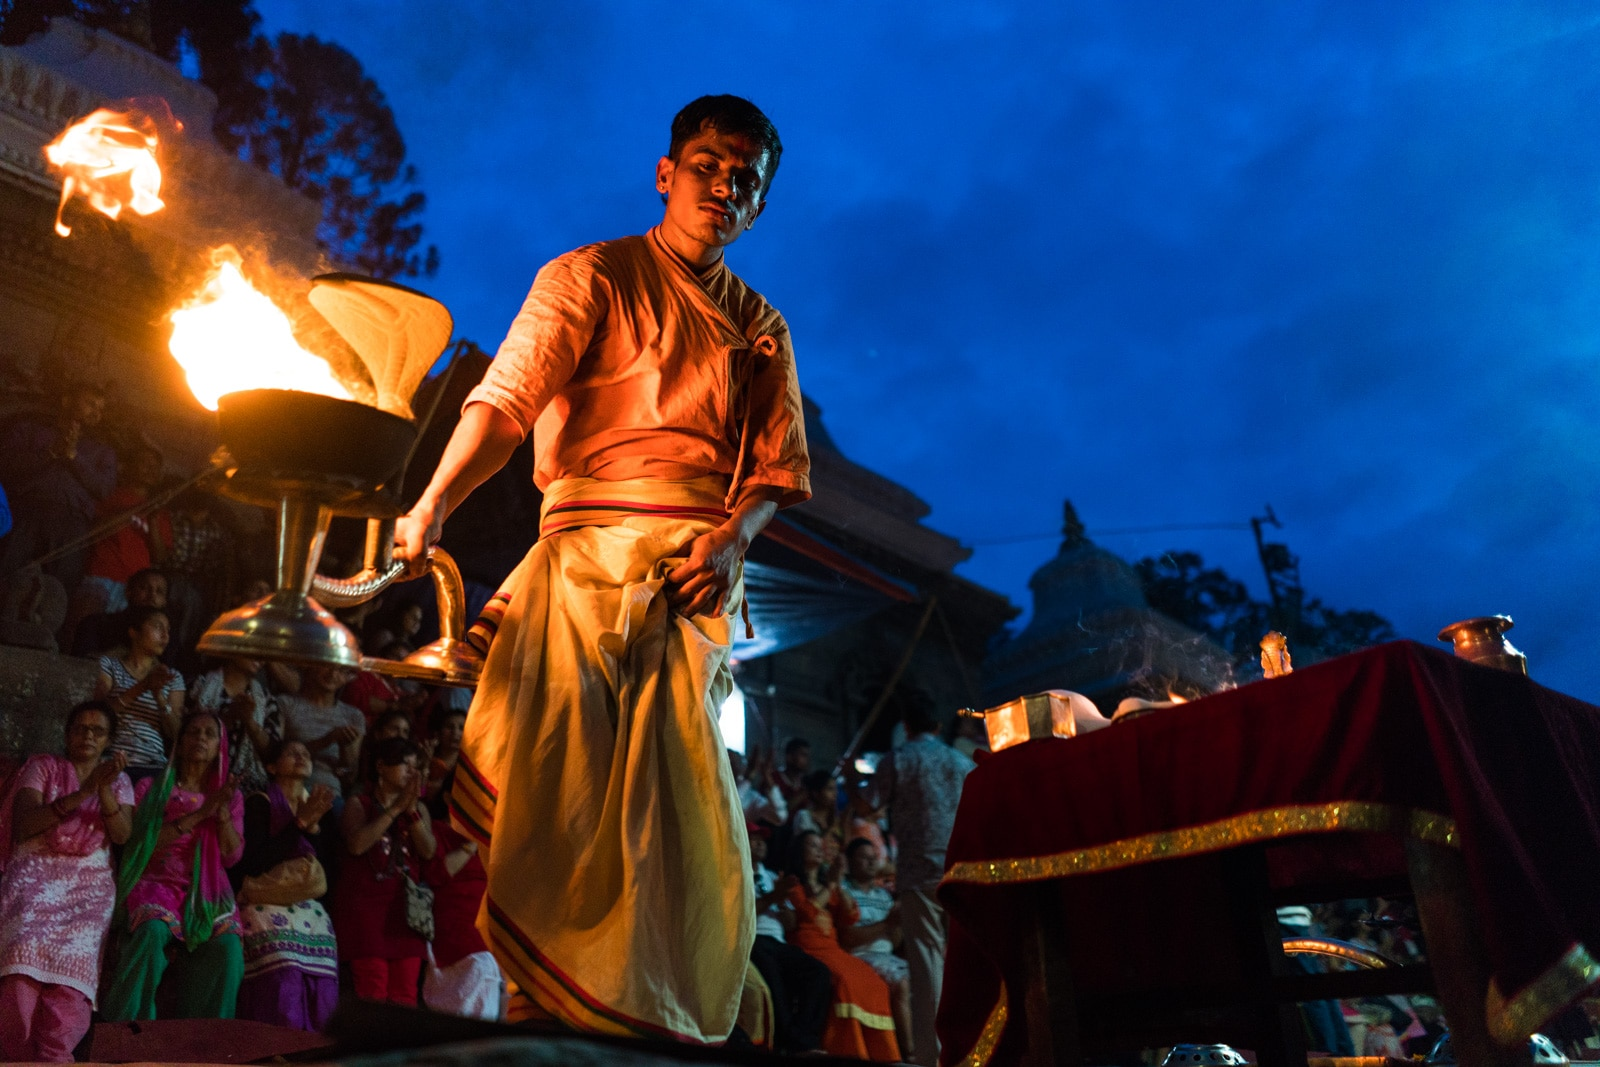 Things to see in Kathmandu, Nepal during monsoon - Evening Bagmati Aarti at Pashupatinath temple - Lost With Purpose travel blog